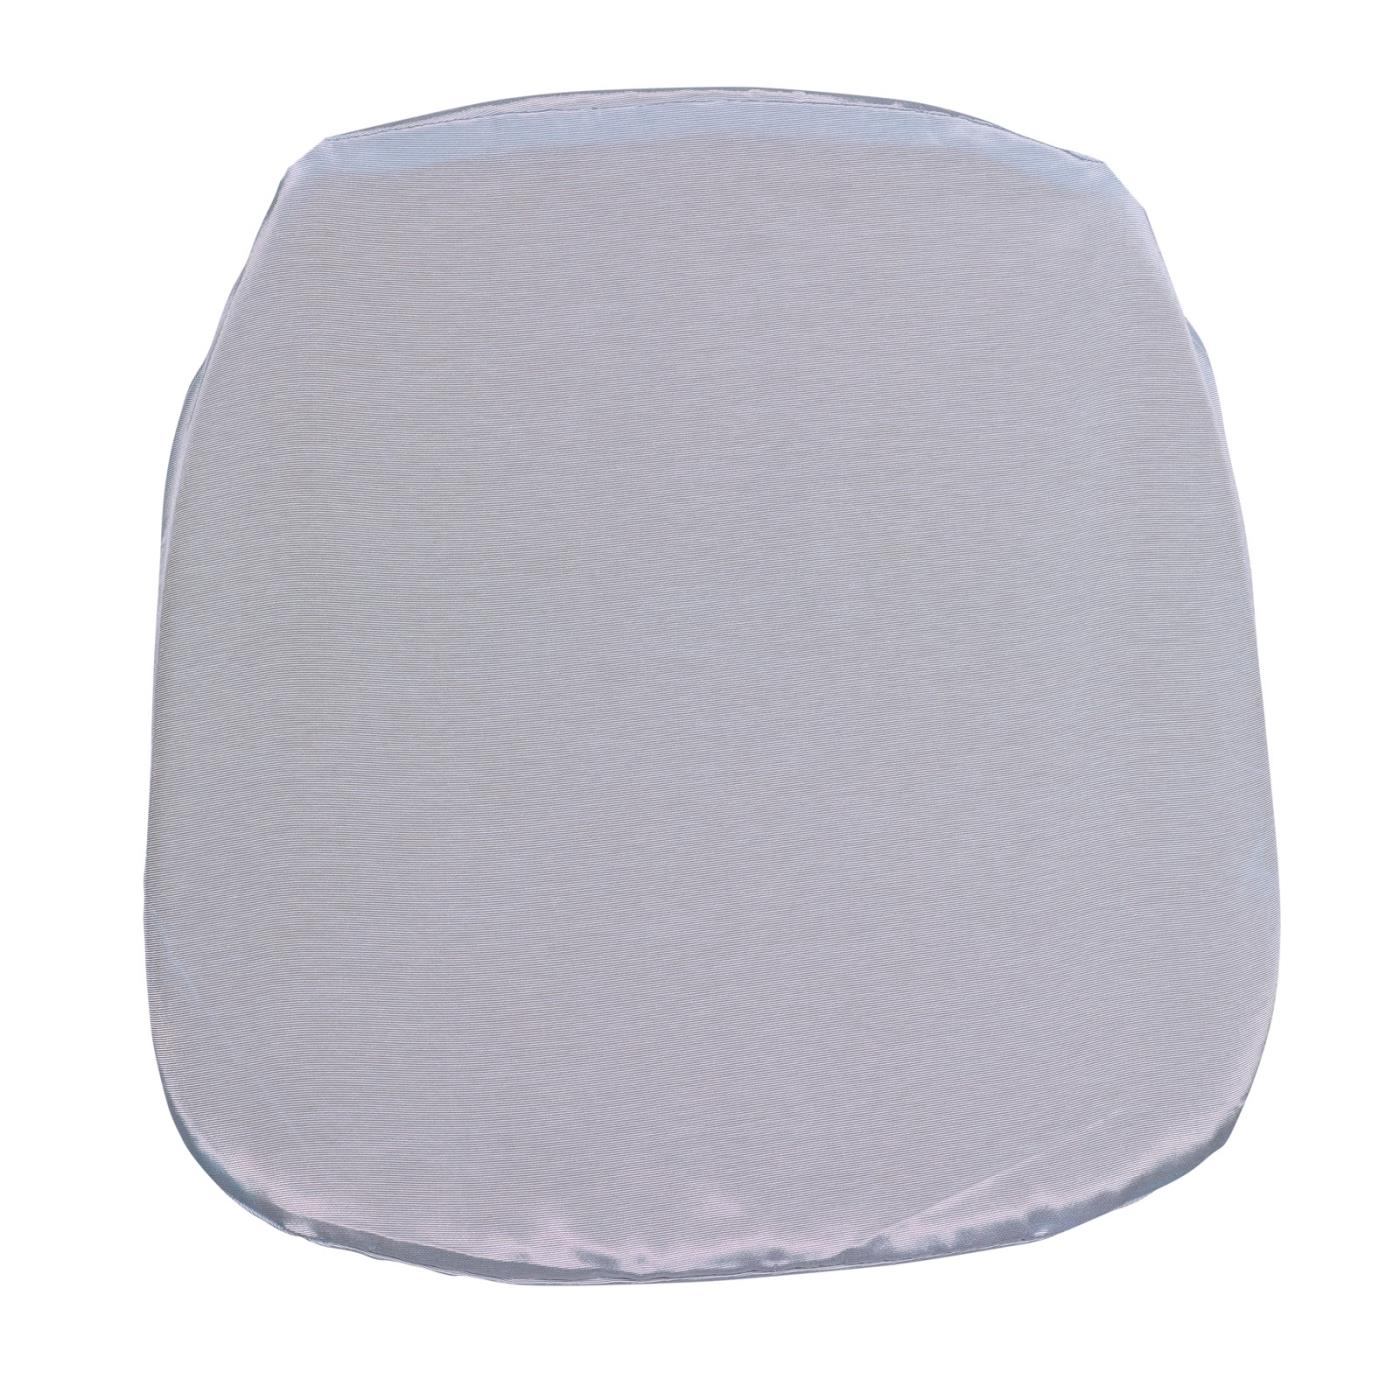 Bengaline Seat Cushion - Baby Blue